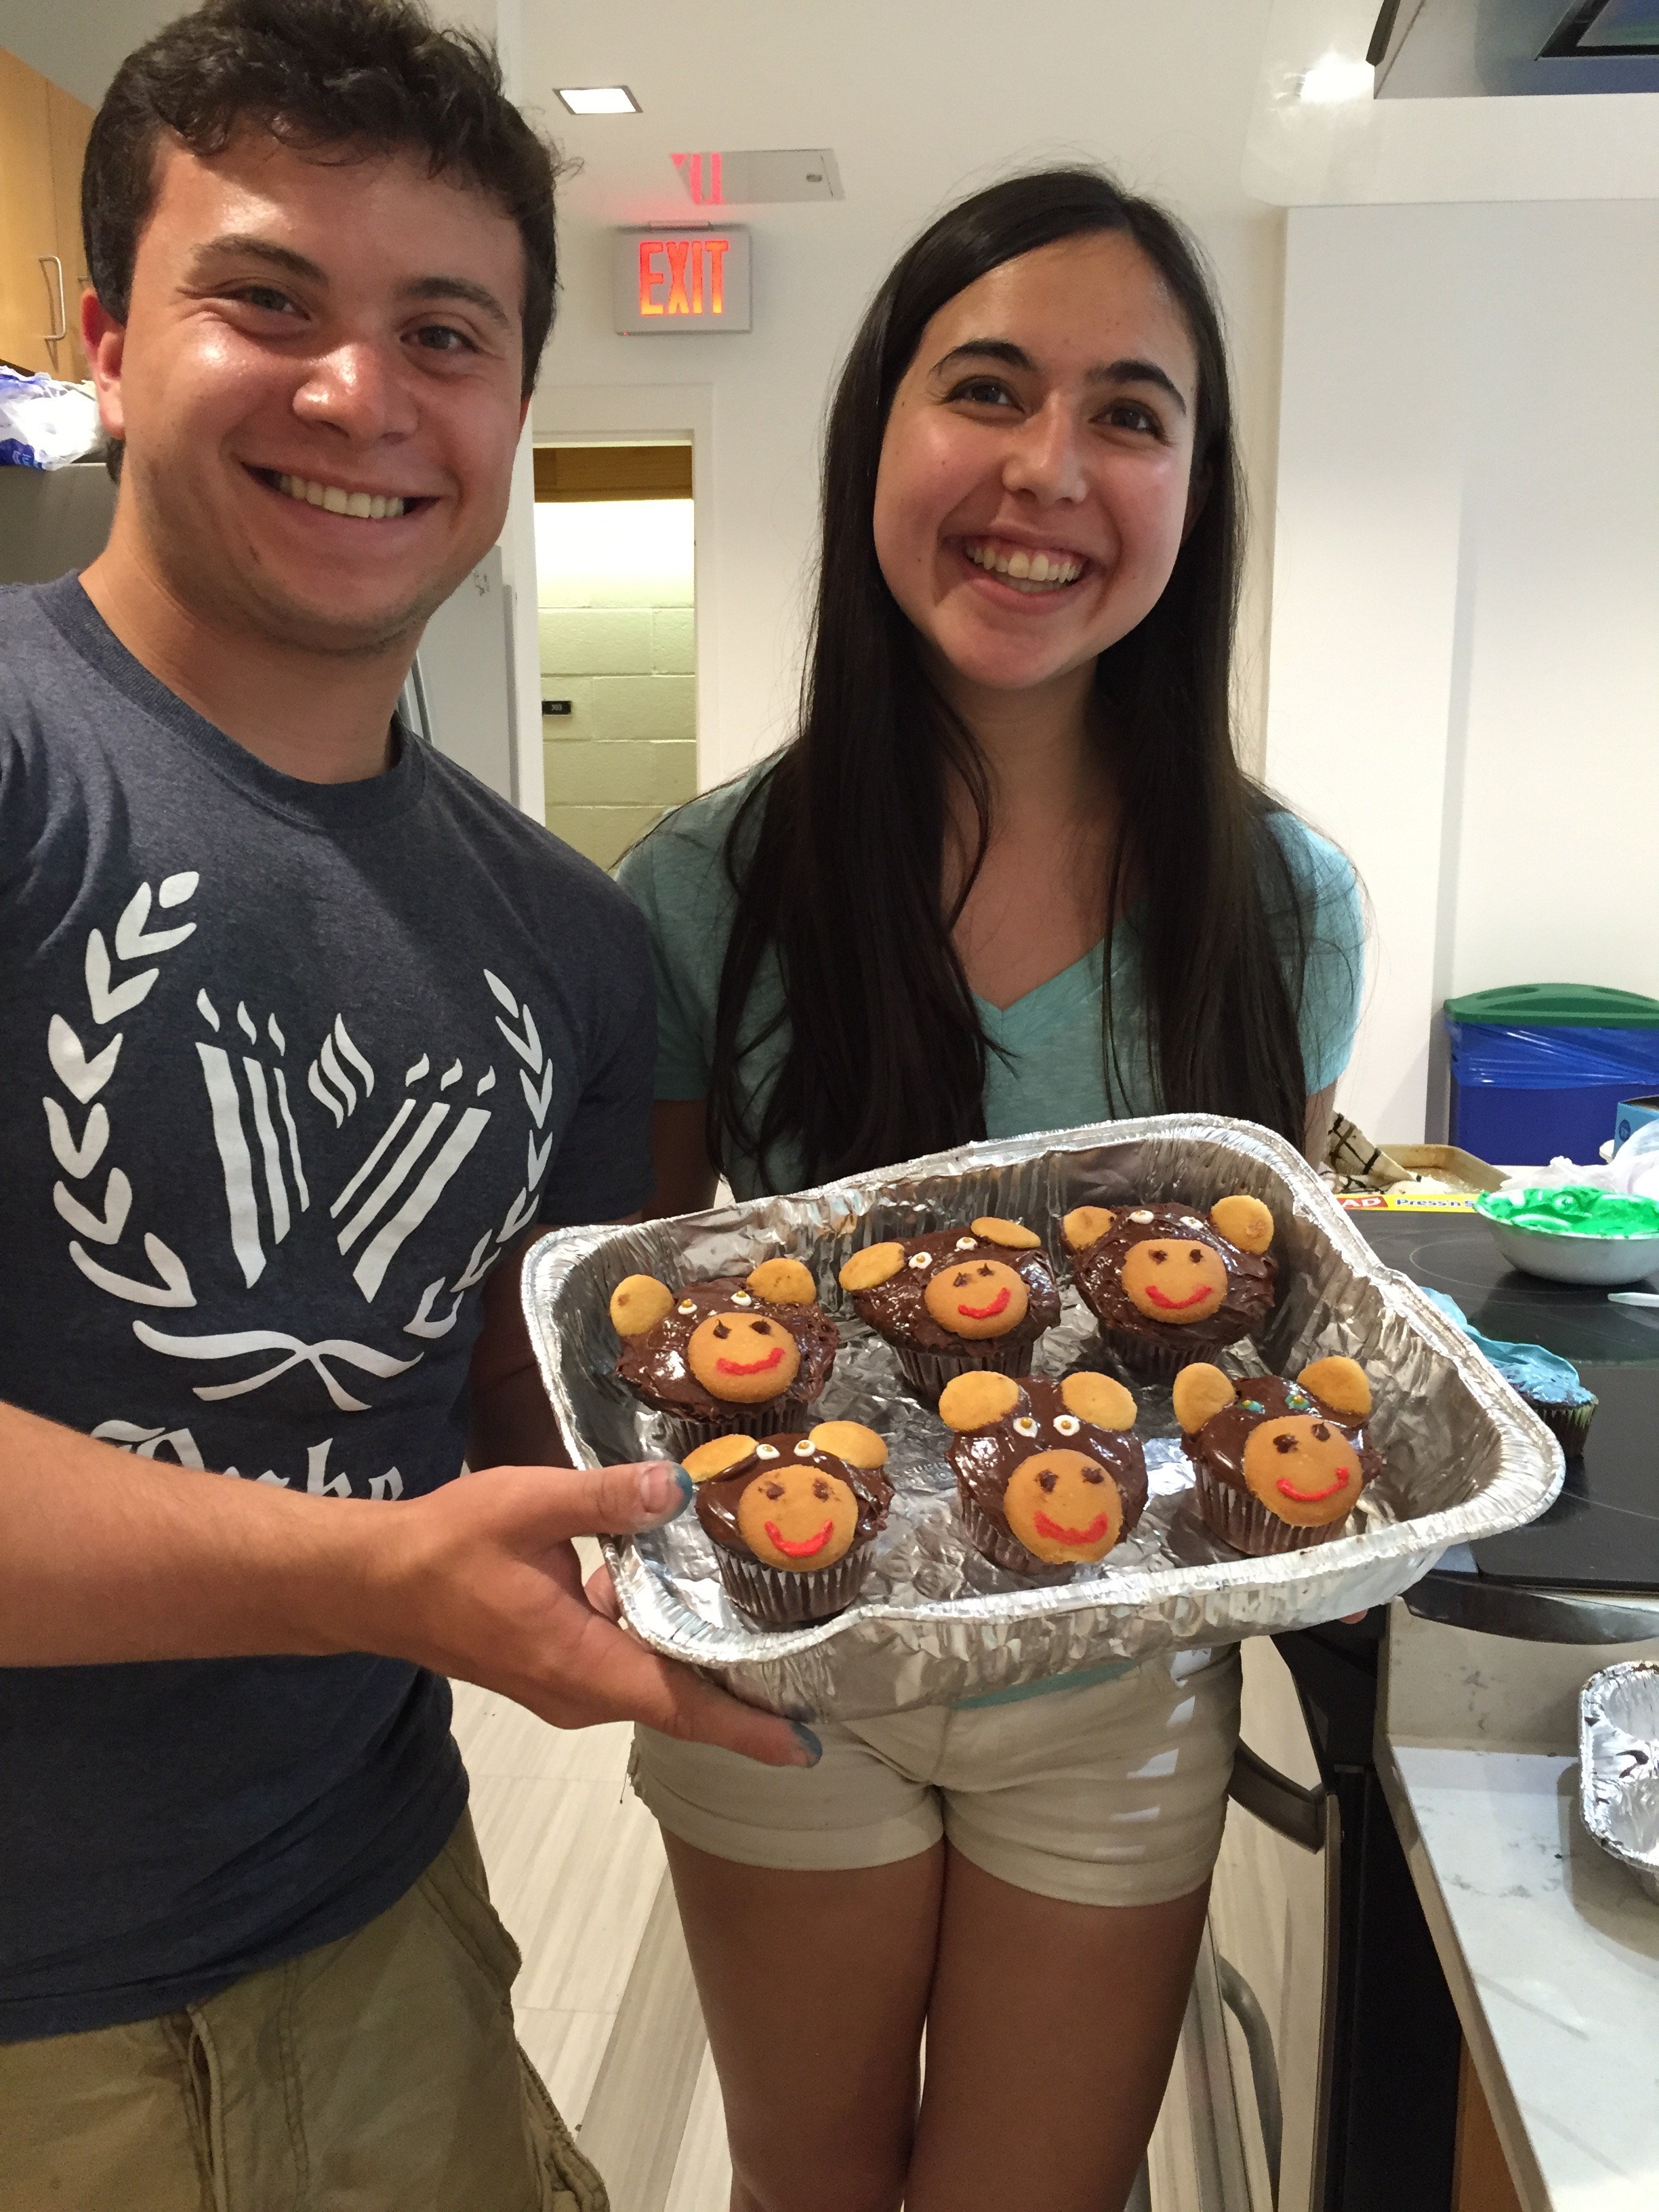 Lab undergrads Reena Debray and Jay Zussman celebrate the end of 2015-2016 with cupcake monkeys